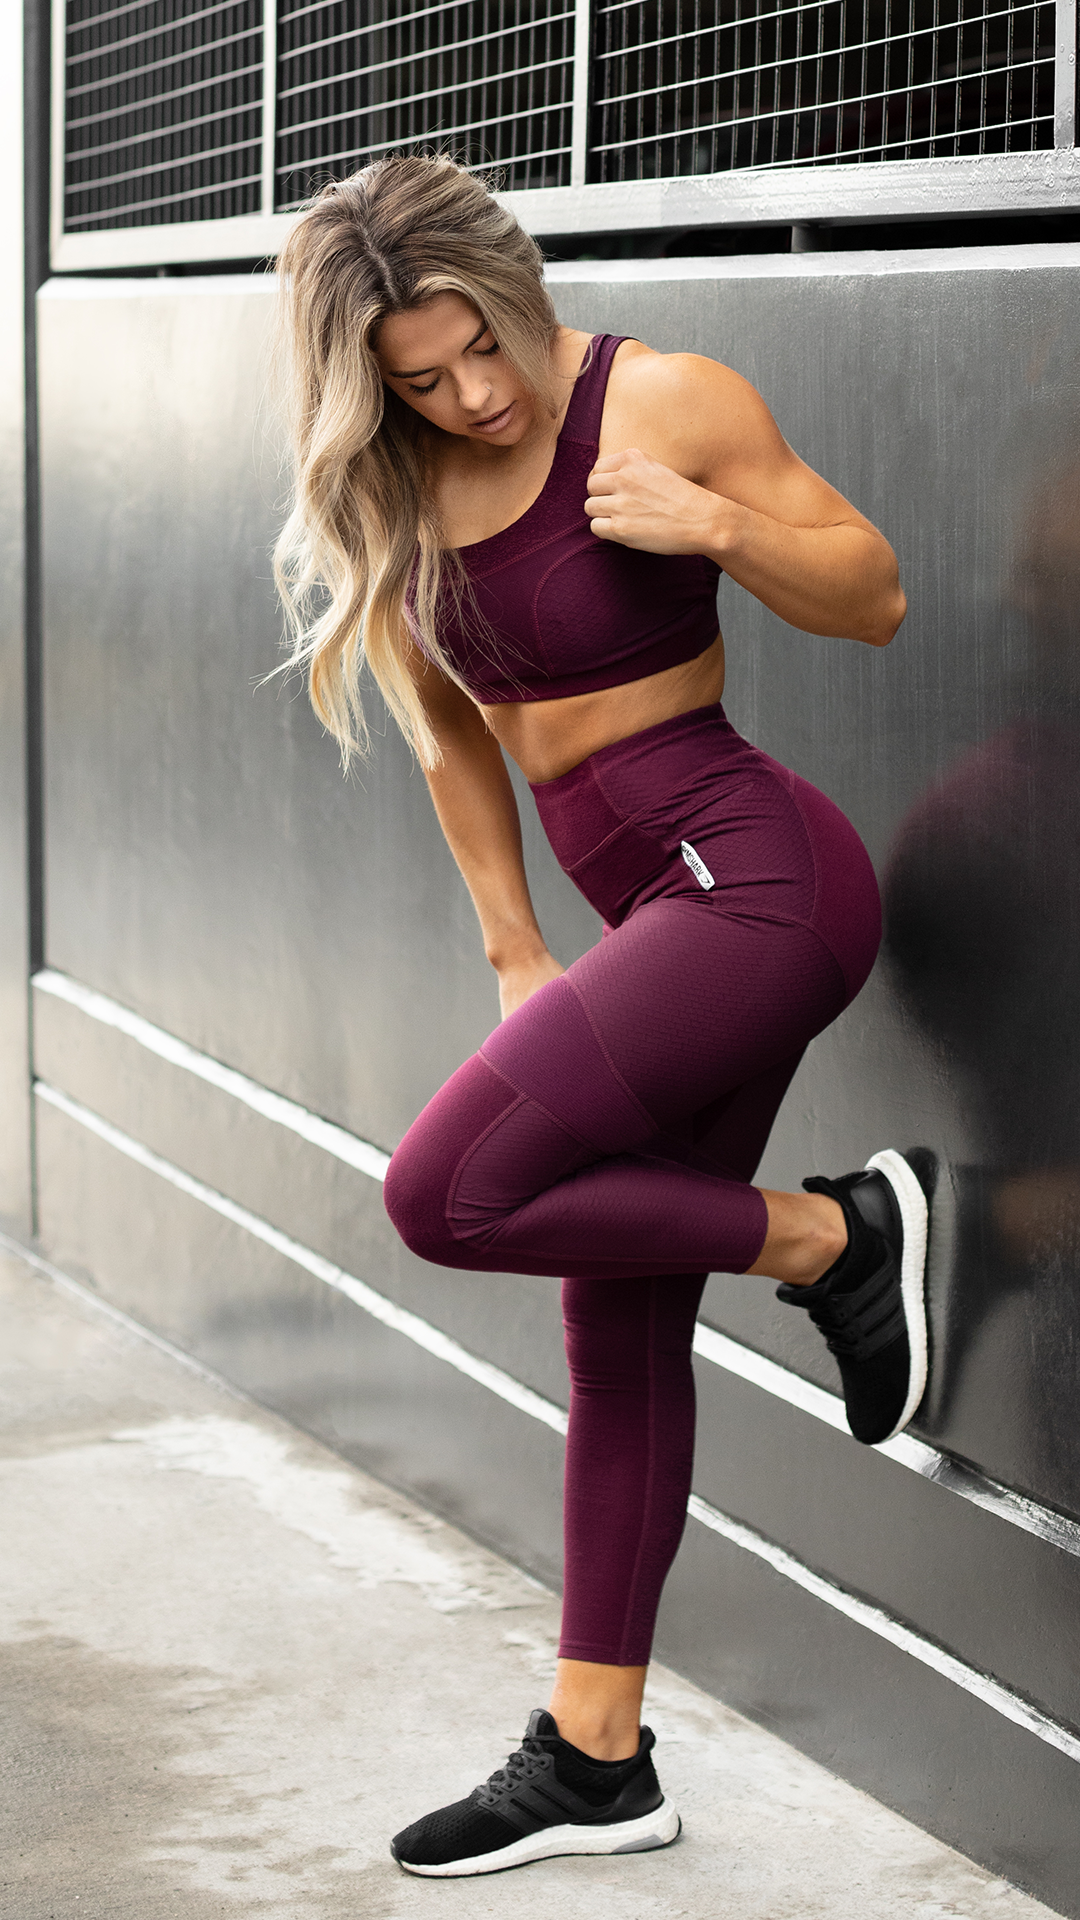 38d84f9703ec8 The True Texture collection, comfort with character. Here we feature the  Dark Ruby colourway. #Gymshark #Gym #Sweat #Train #Perform #Seamless  #Exercise ...